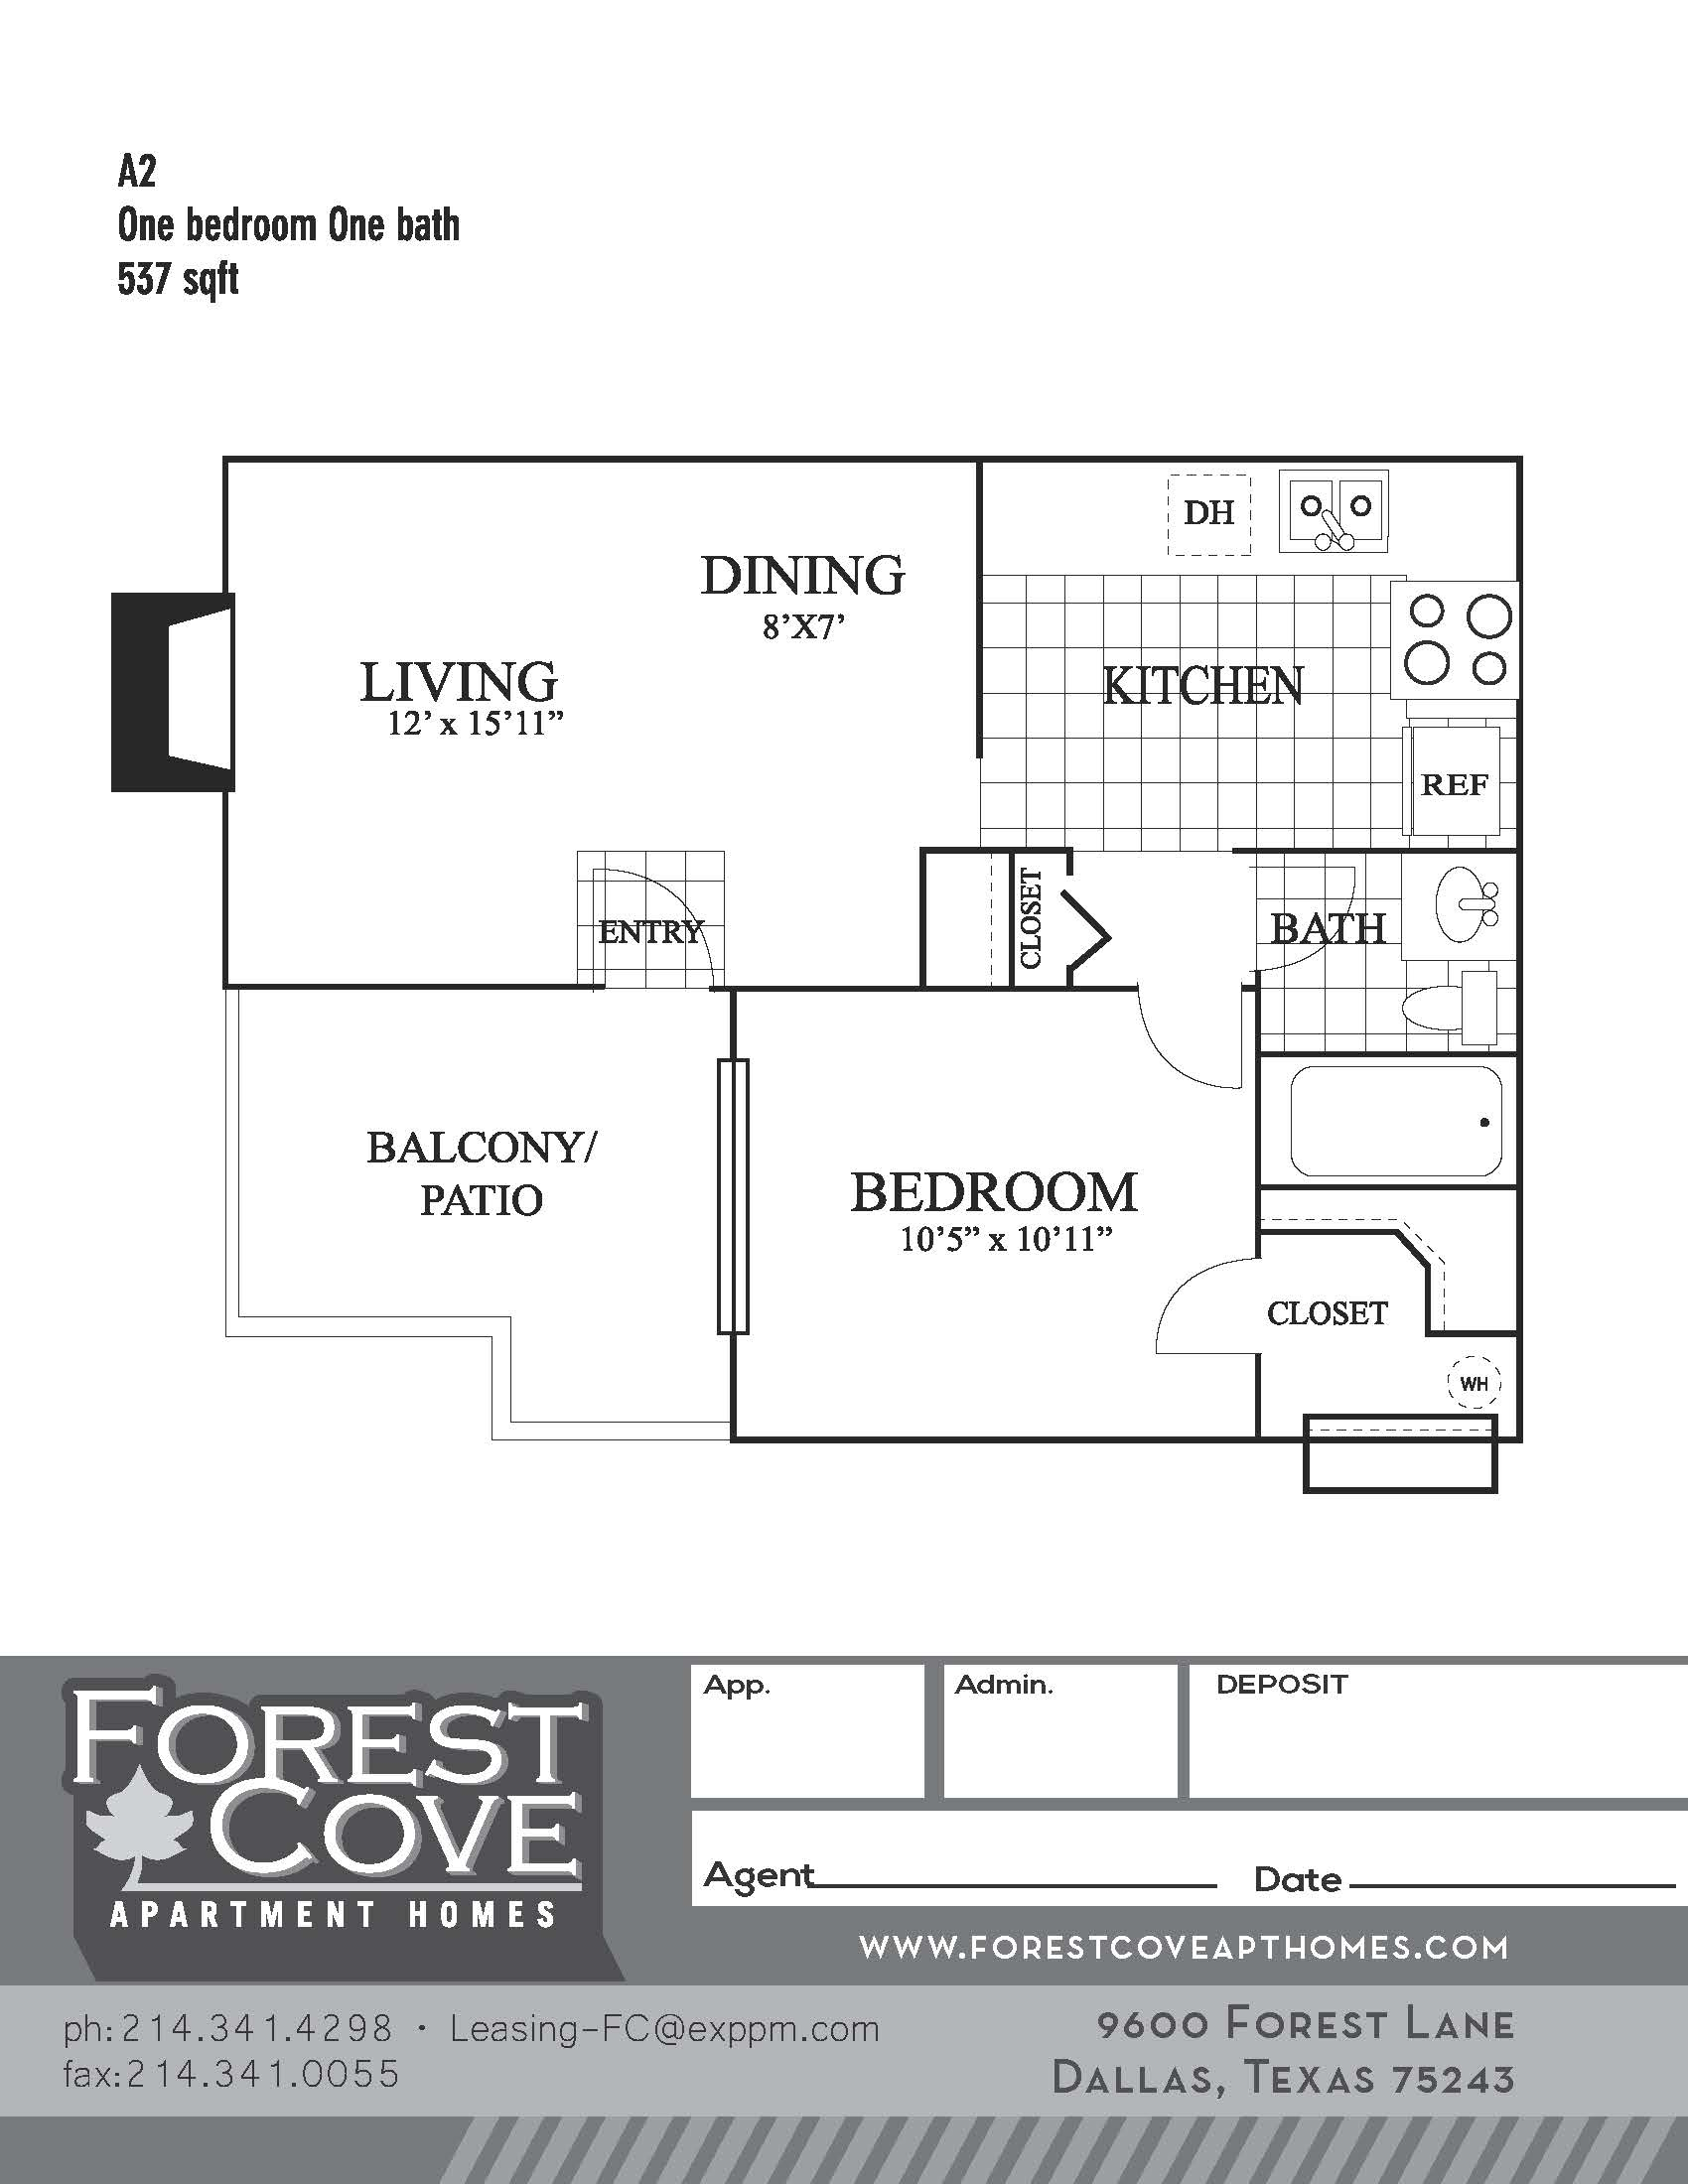 Forest Cove Apartments - Floorplan - A2